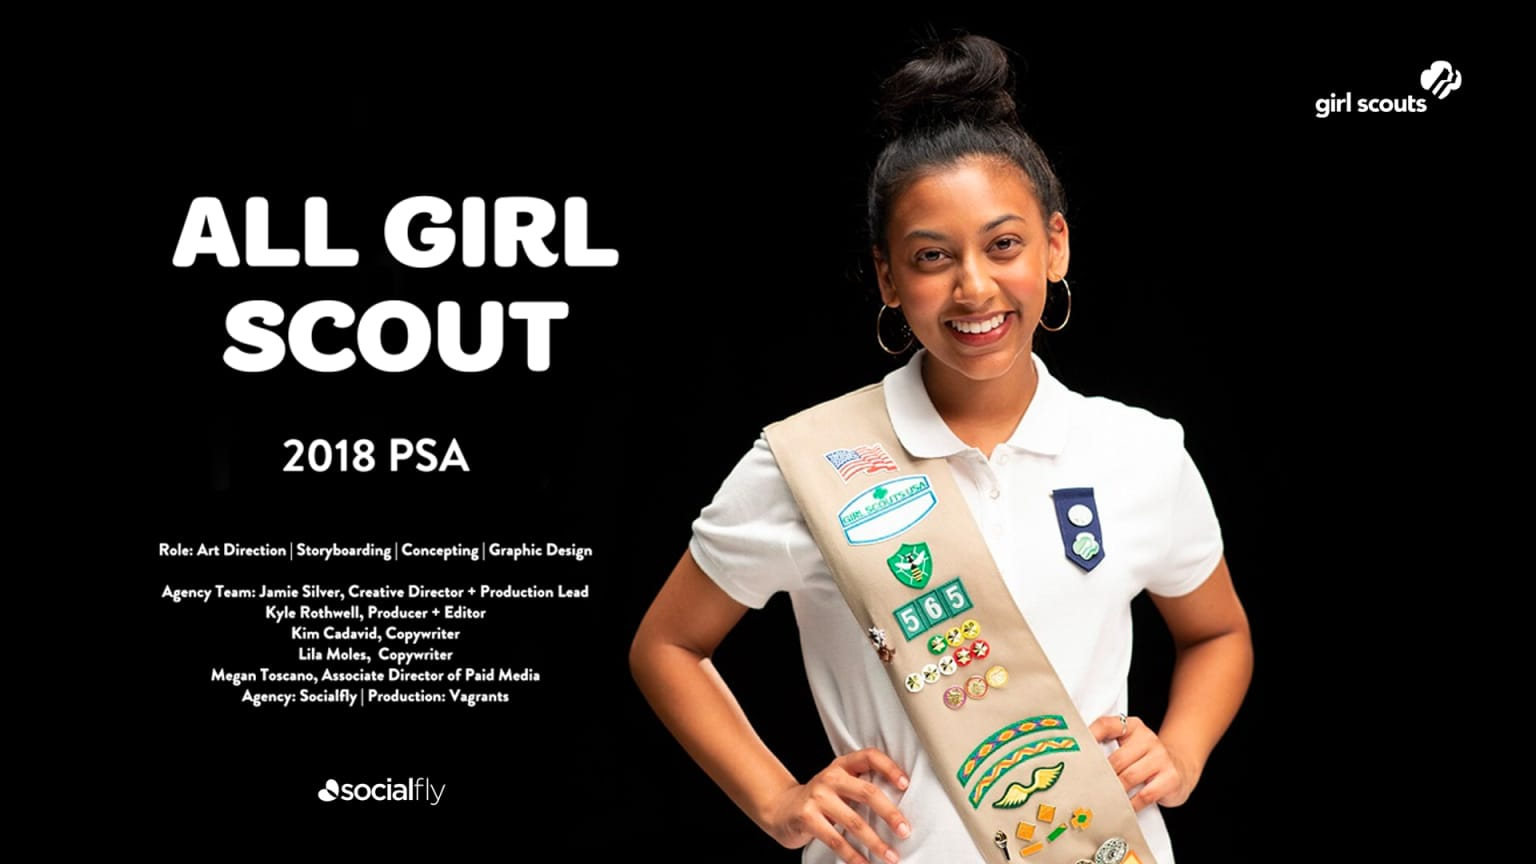 All Girl Scout - PSA